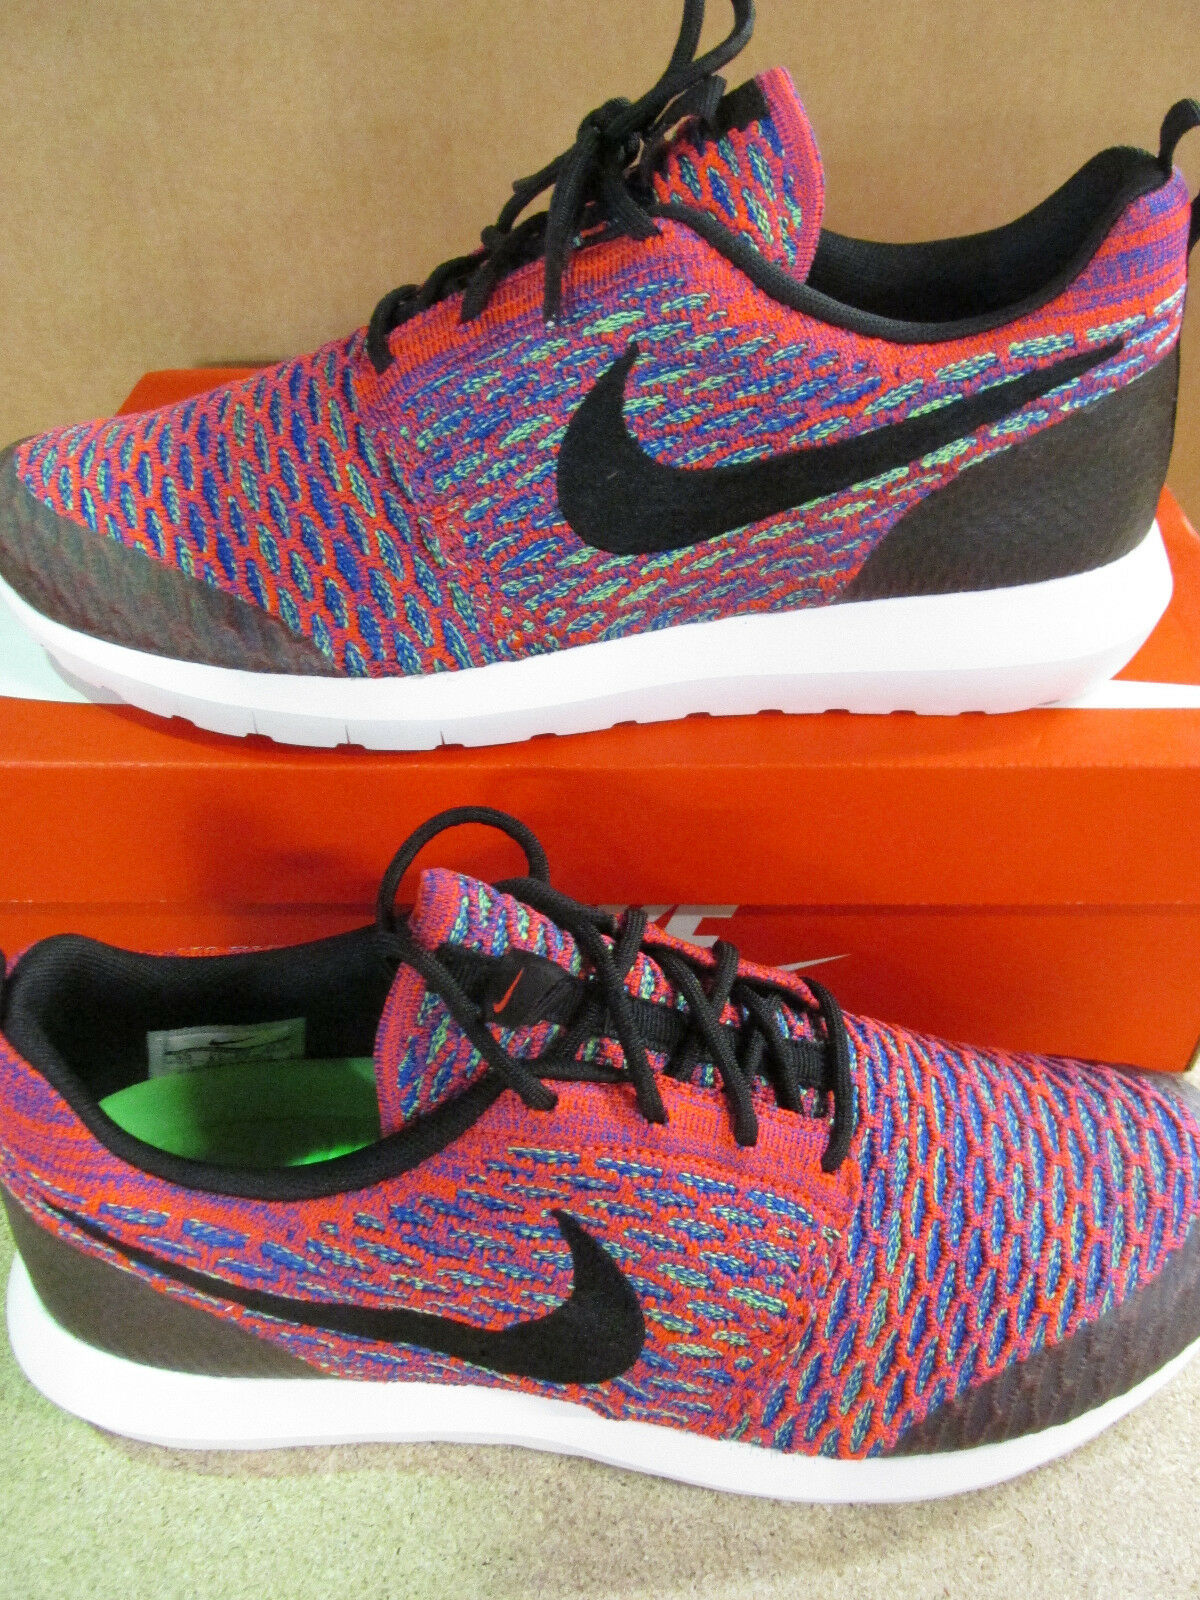 Nike Roshe NM Flyknit SE Trainers Mens Running Trainers SE 816531 600 Sneakers Shoes 847eaf